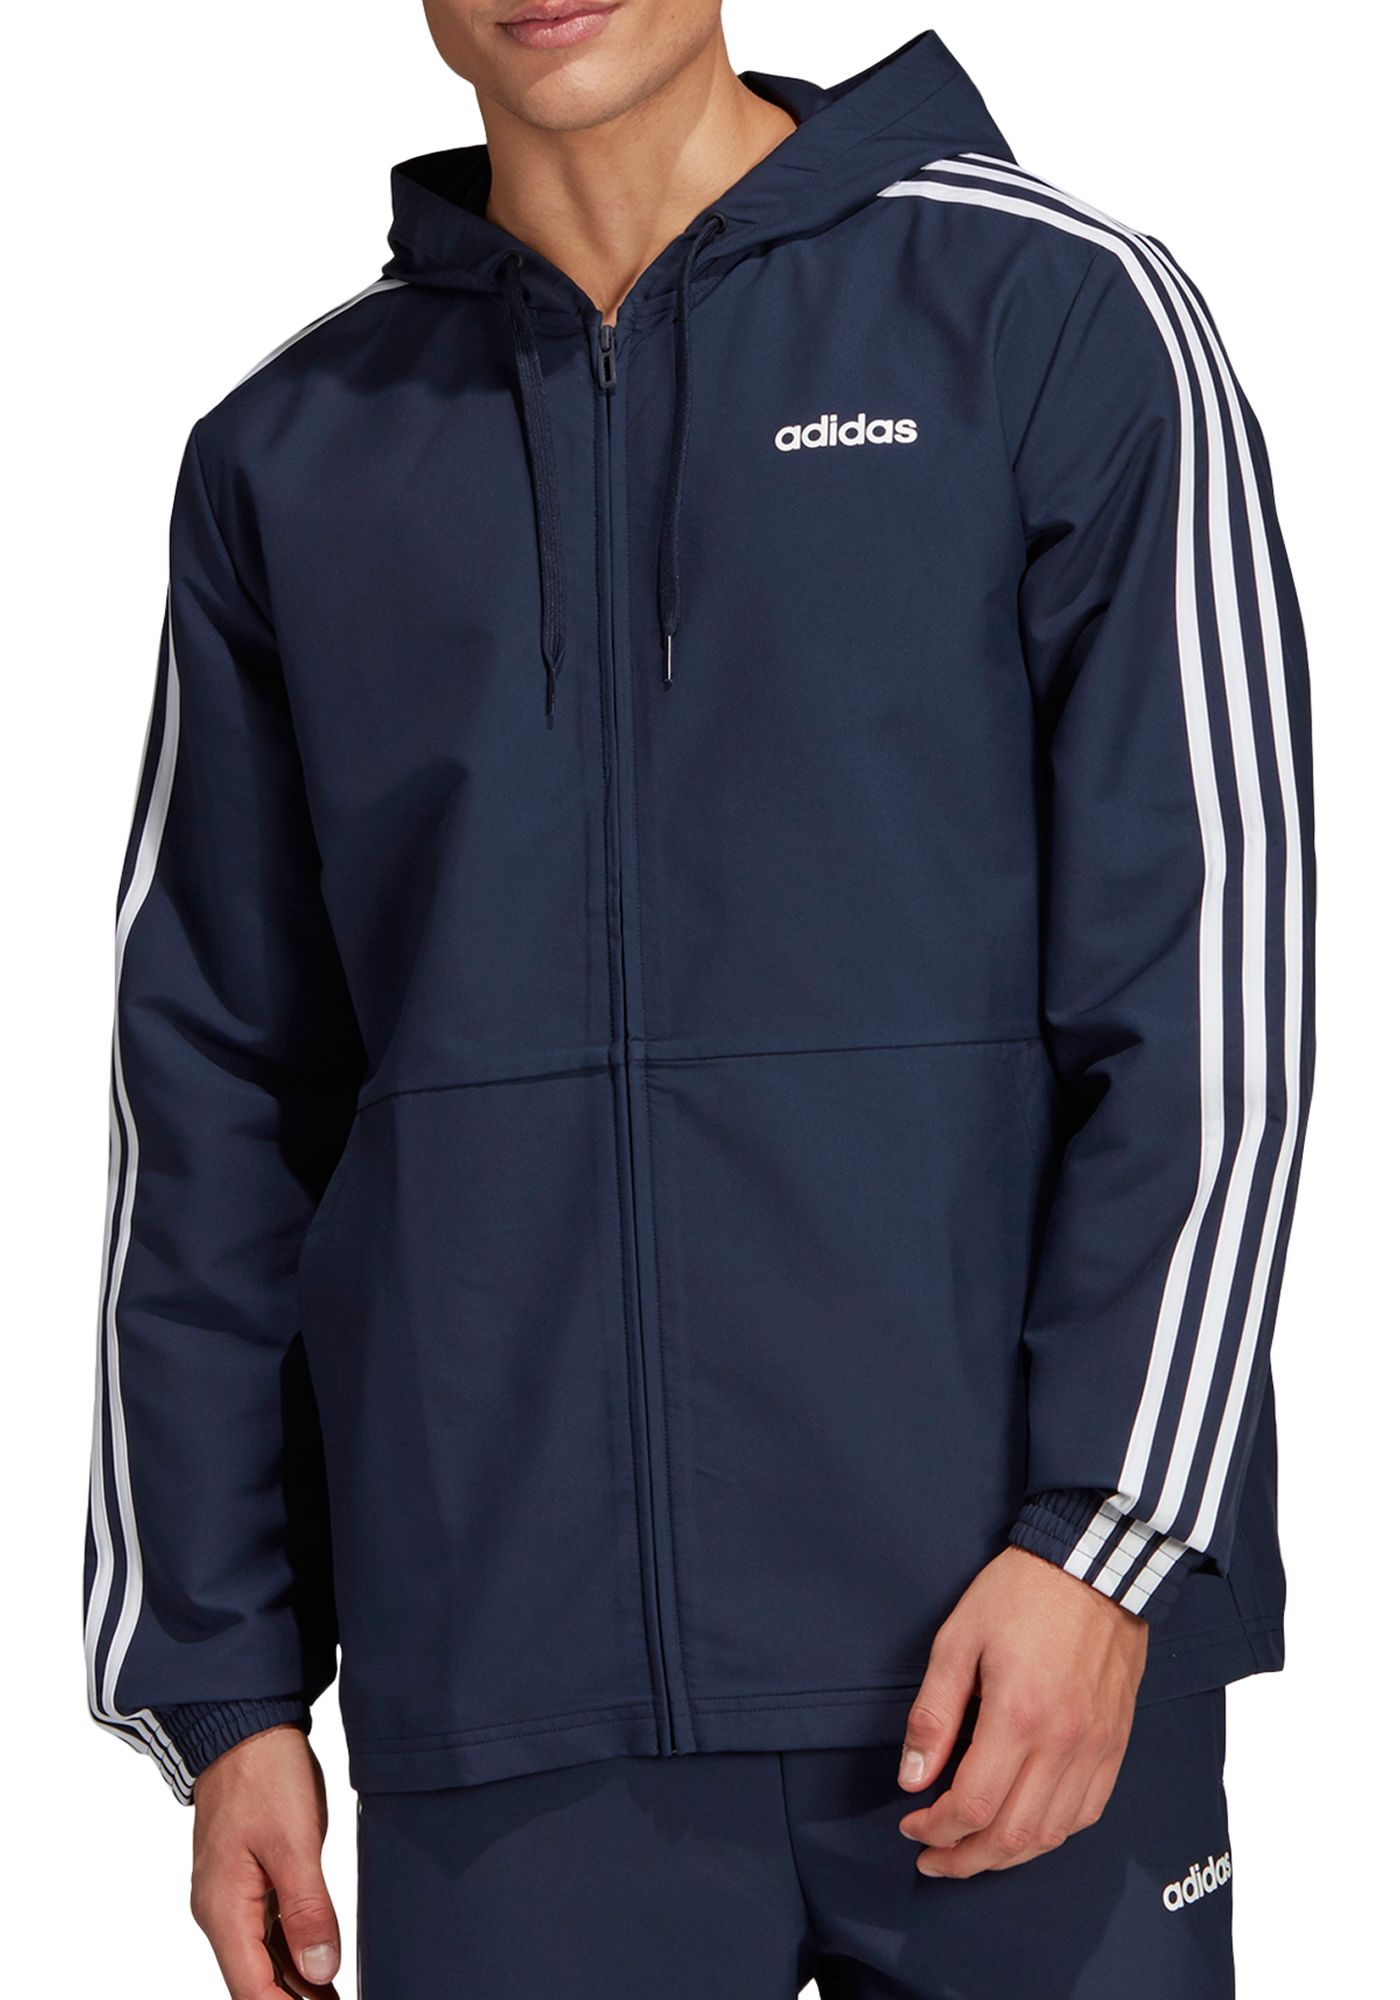 adidas Men's Essentials 3-Stripes Woven Windbreaker Jacket (Regular and Big & Tall)